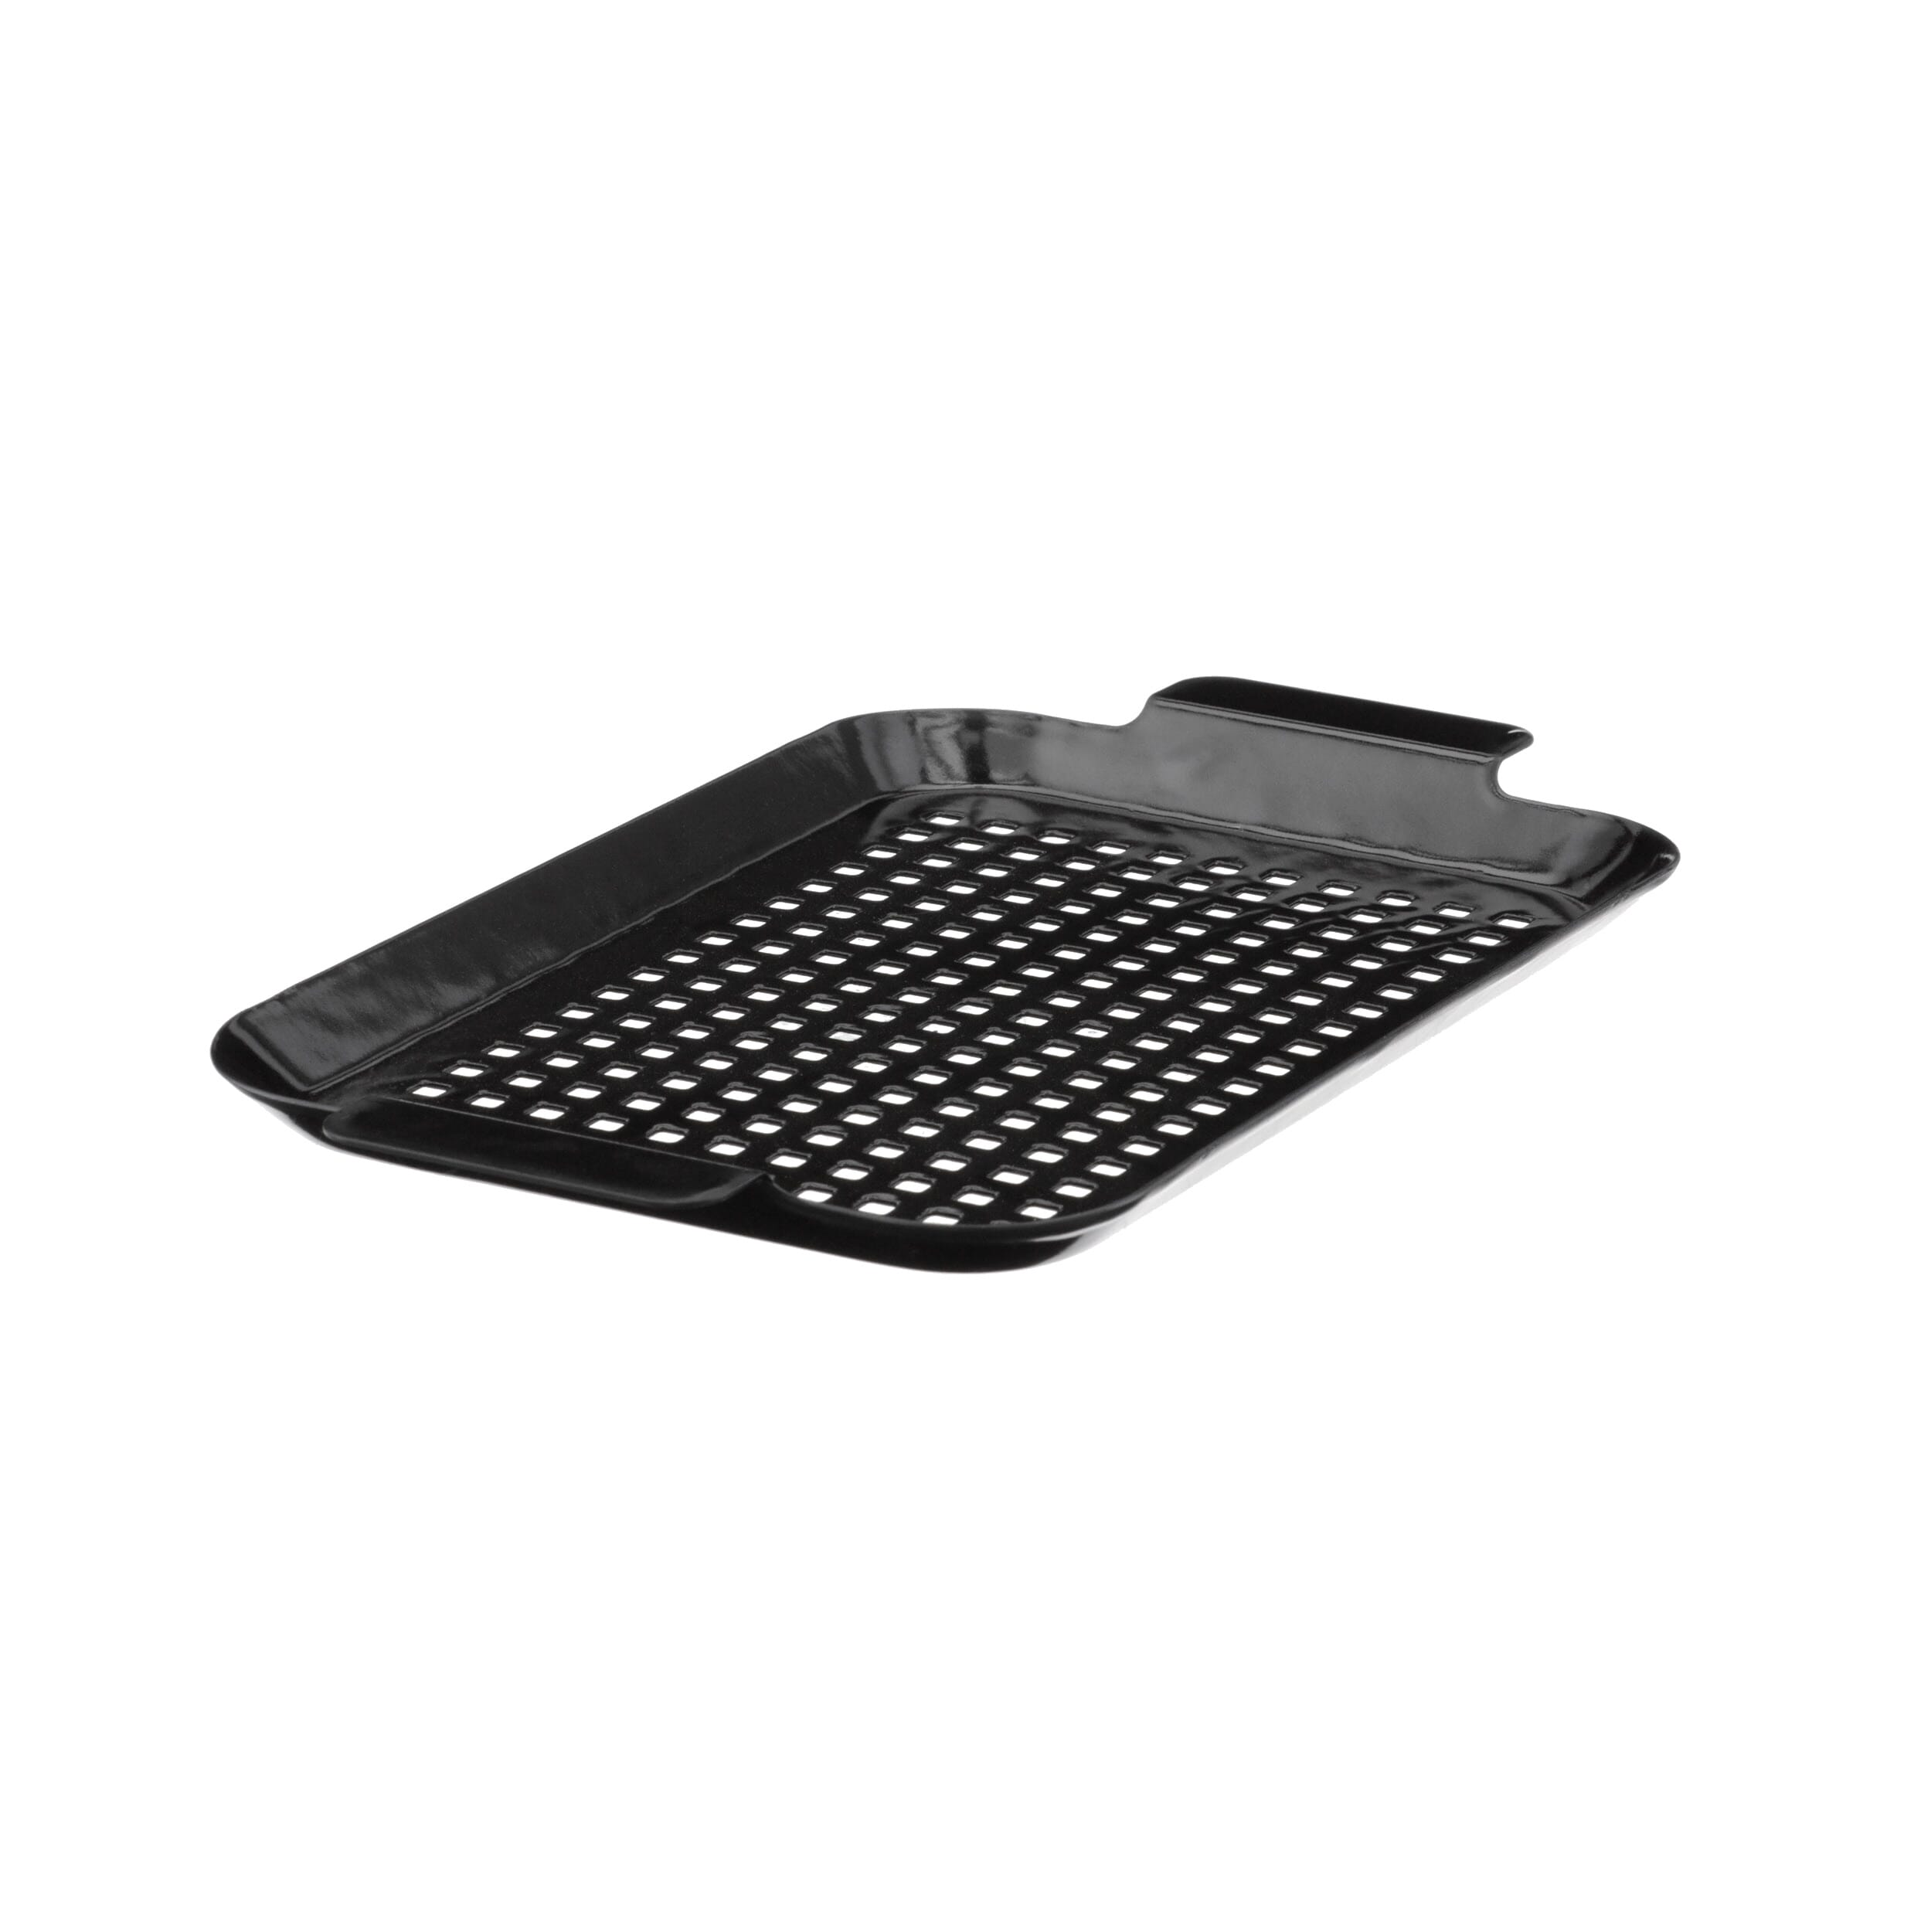 Cooking grid that comes in two convenient size options